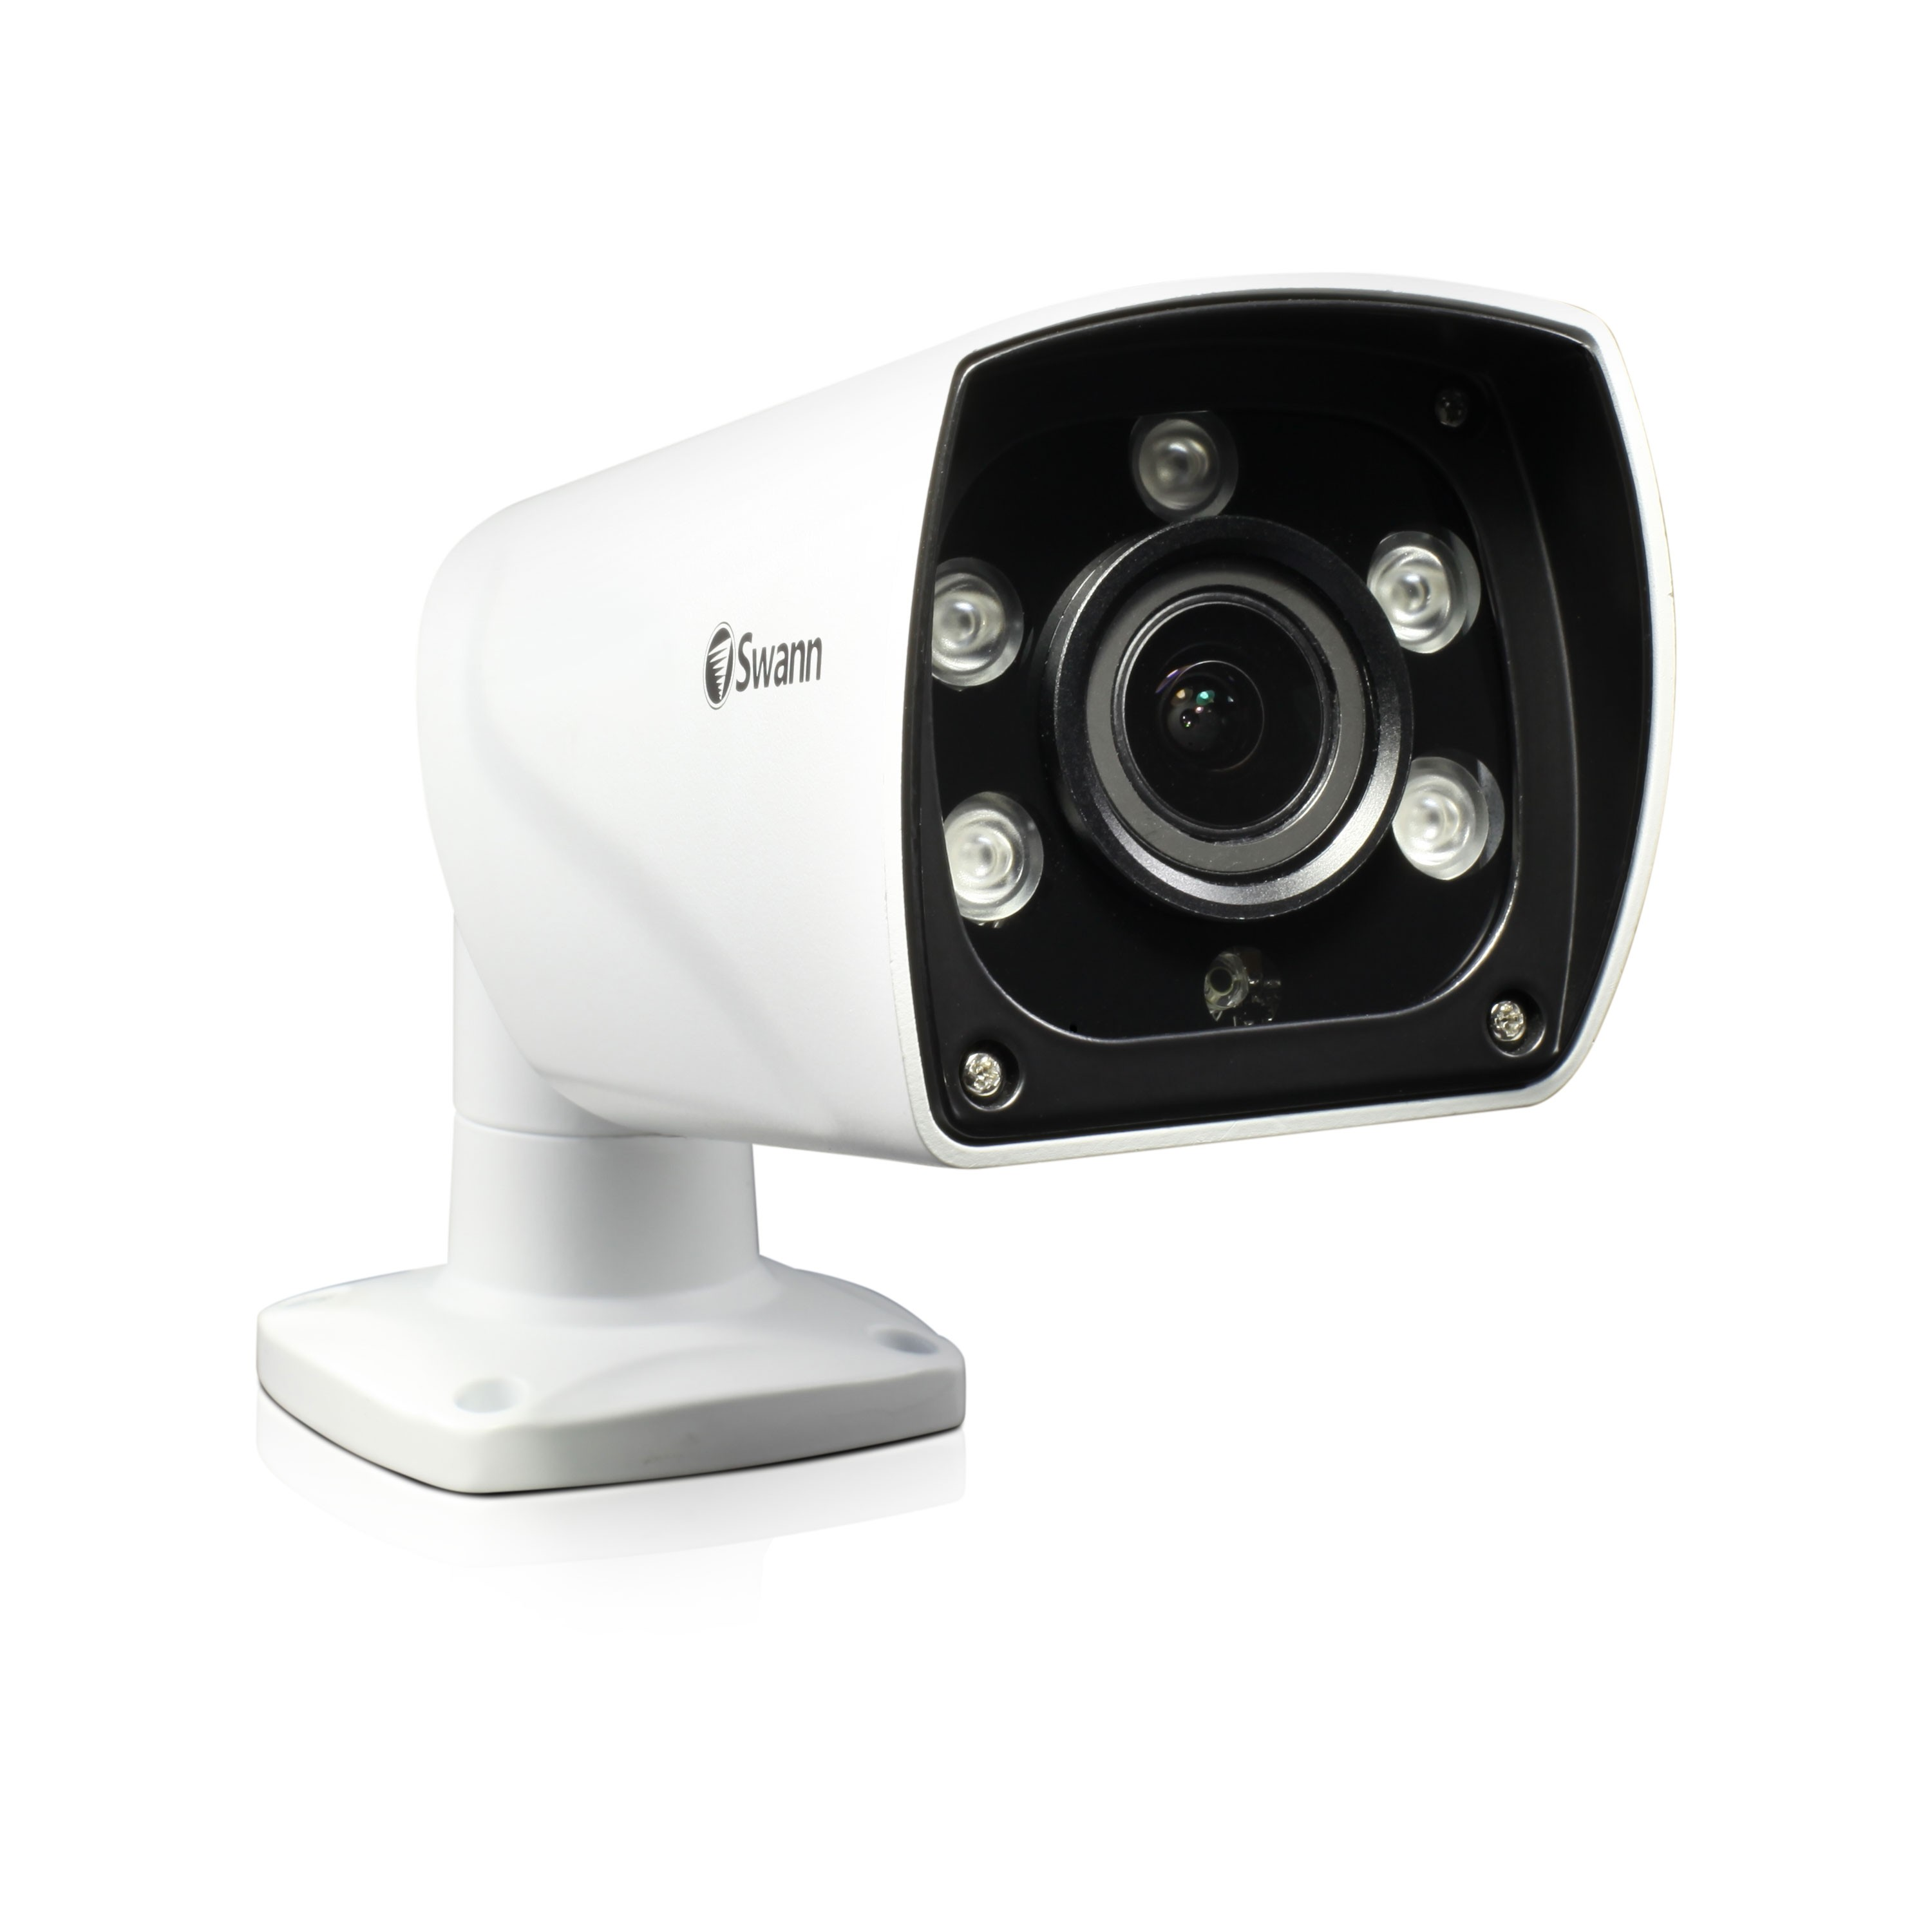 A Place To Call Home Complete Series 4 Camera Advance Pro Series Cctv Installation Cctv Swpro-1080zlb Swann Outdoor Security Camera: 1080p Full Hd Bullet With 4 X  Zoom